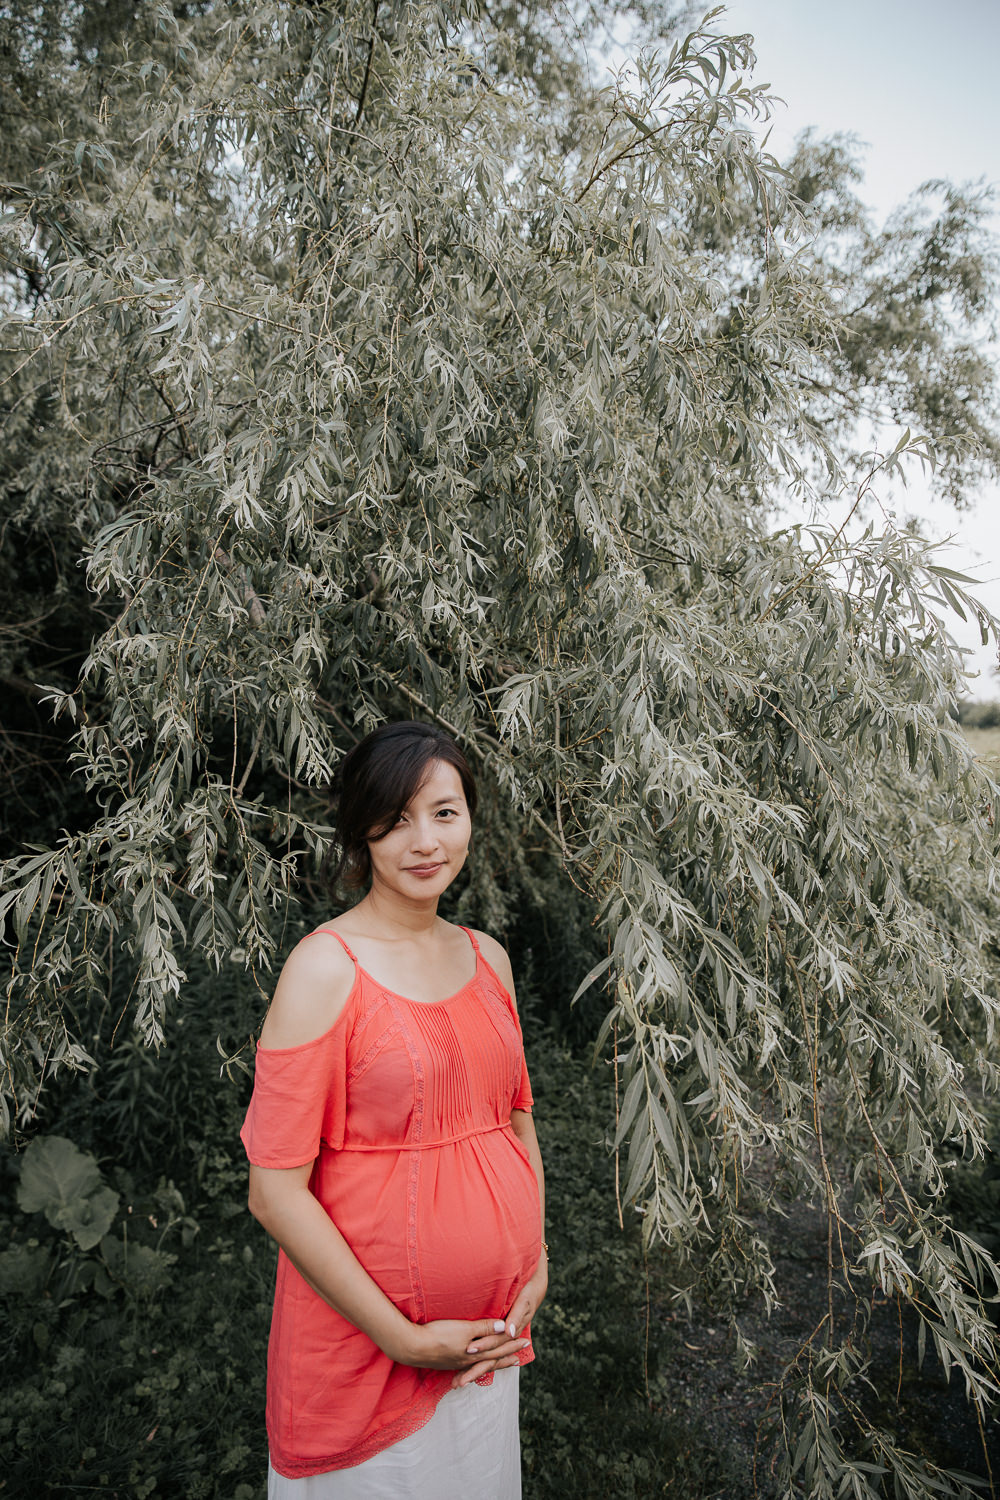 pregnant woman in flowing coral top  and white skirt standing in front of willow tree holding baby belly and smiling softly at camera - Barrie Lifestyle Photos